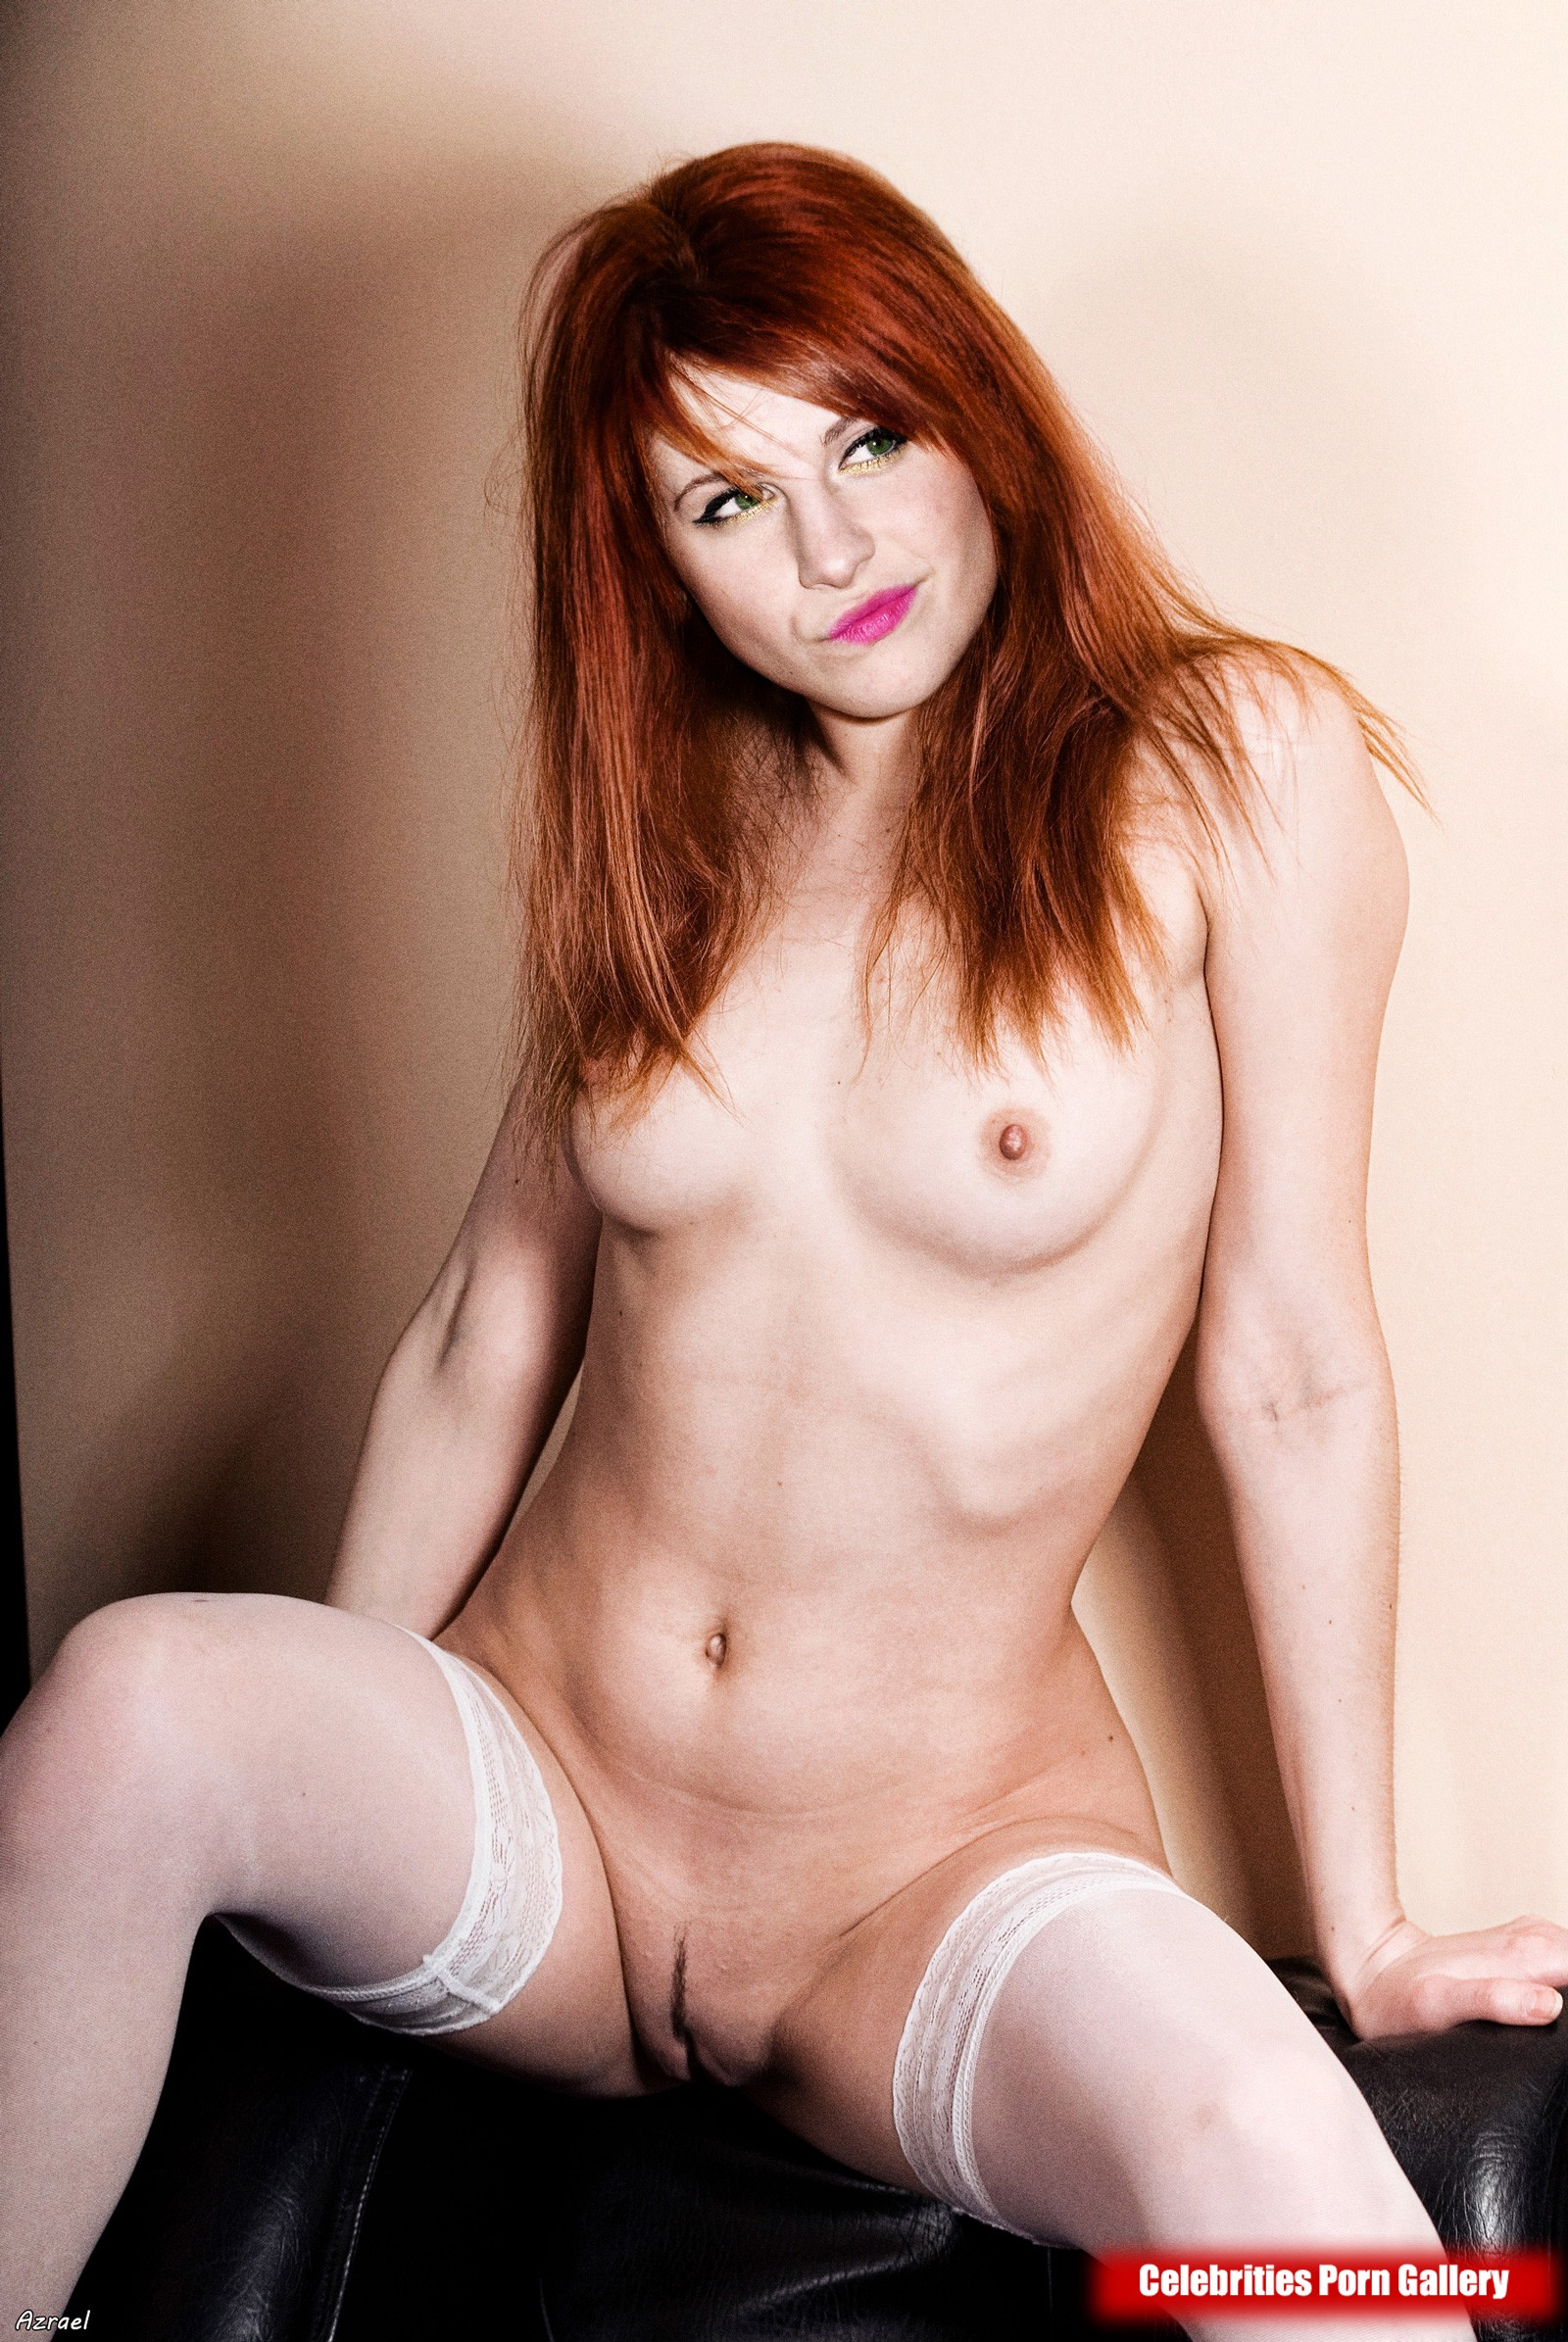 Hailey williams nude